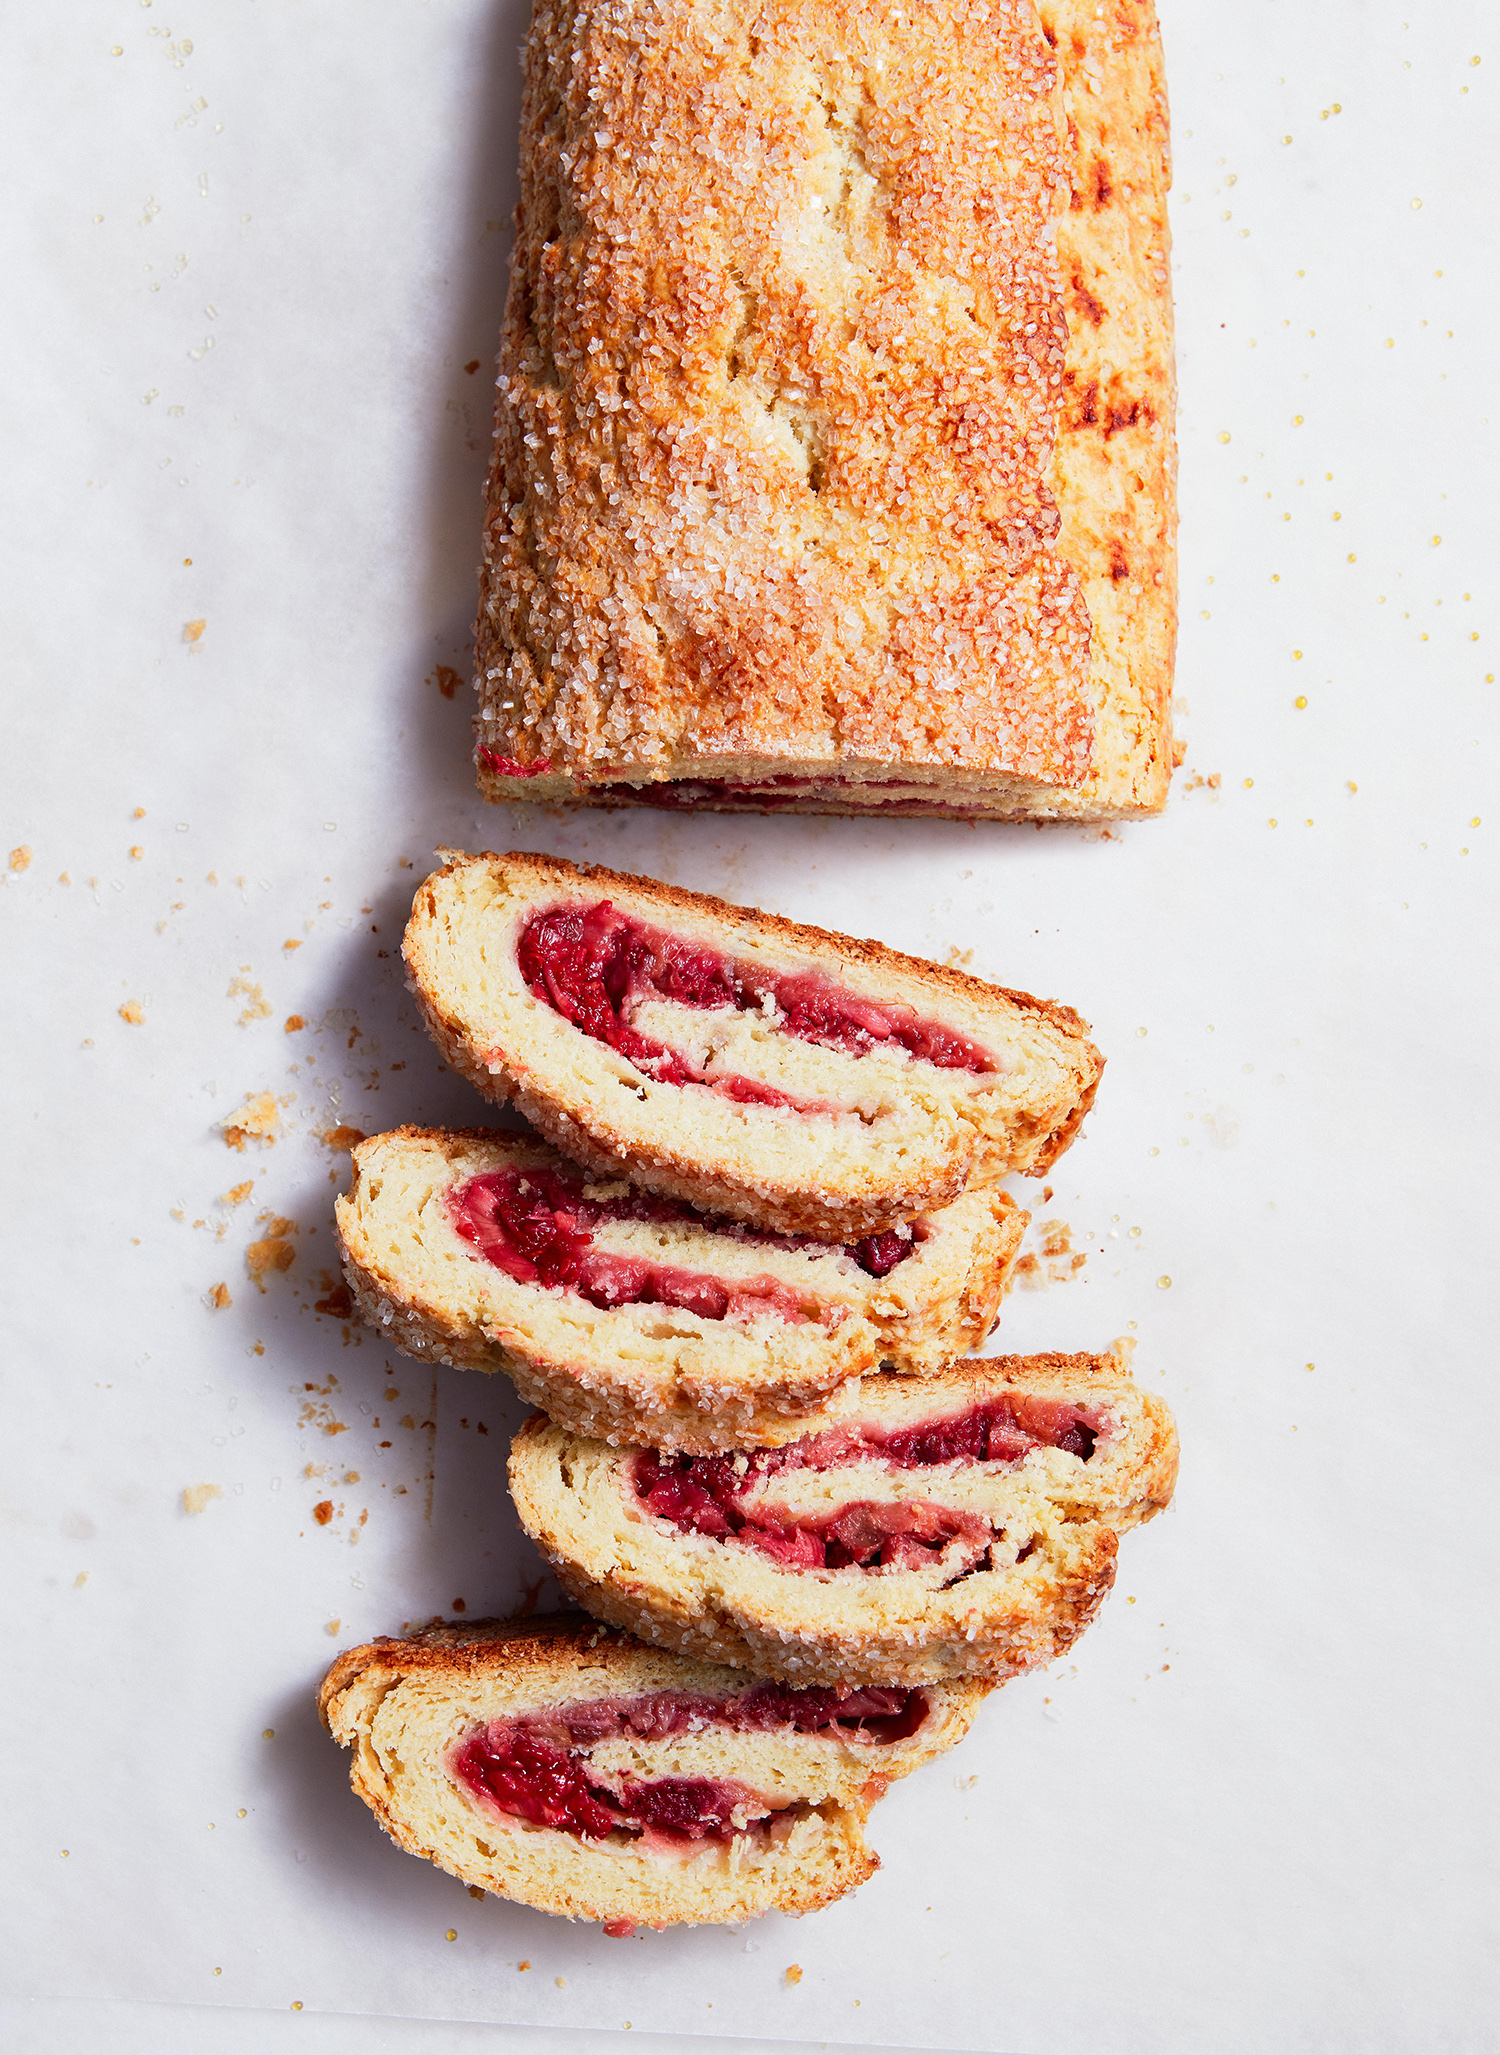 Biscuit-Jelly Roll with Rhubarb and Raspberries